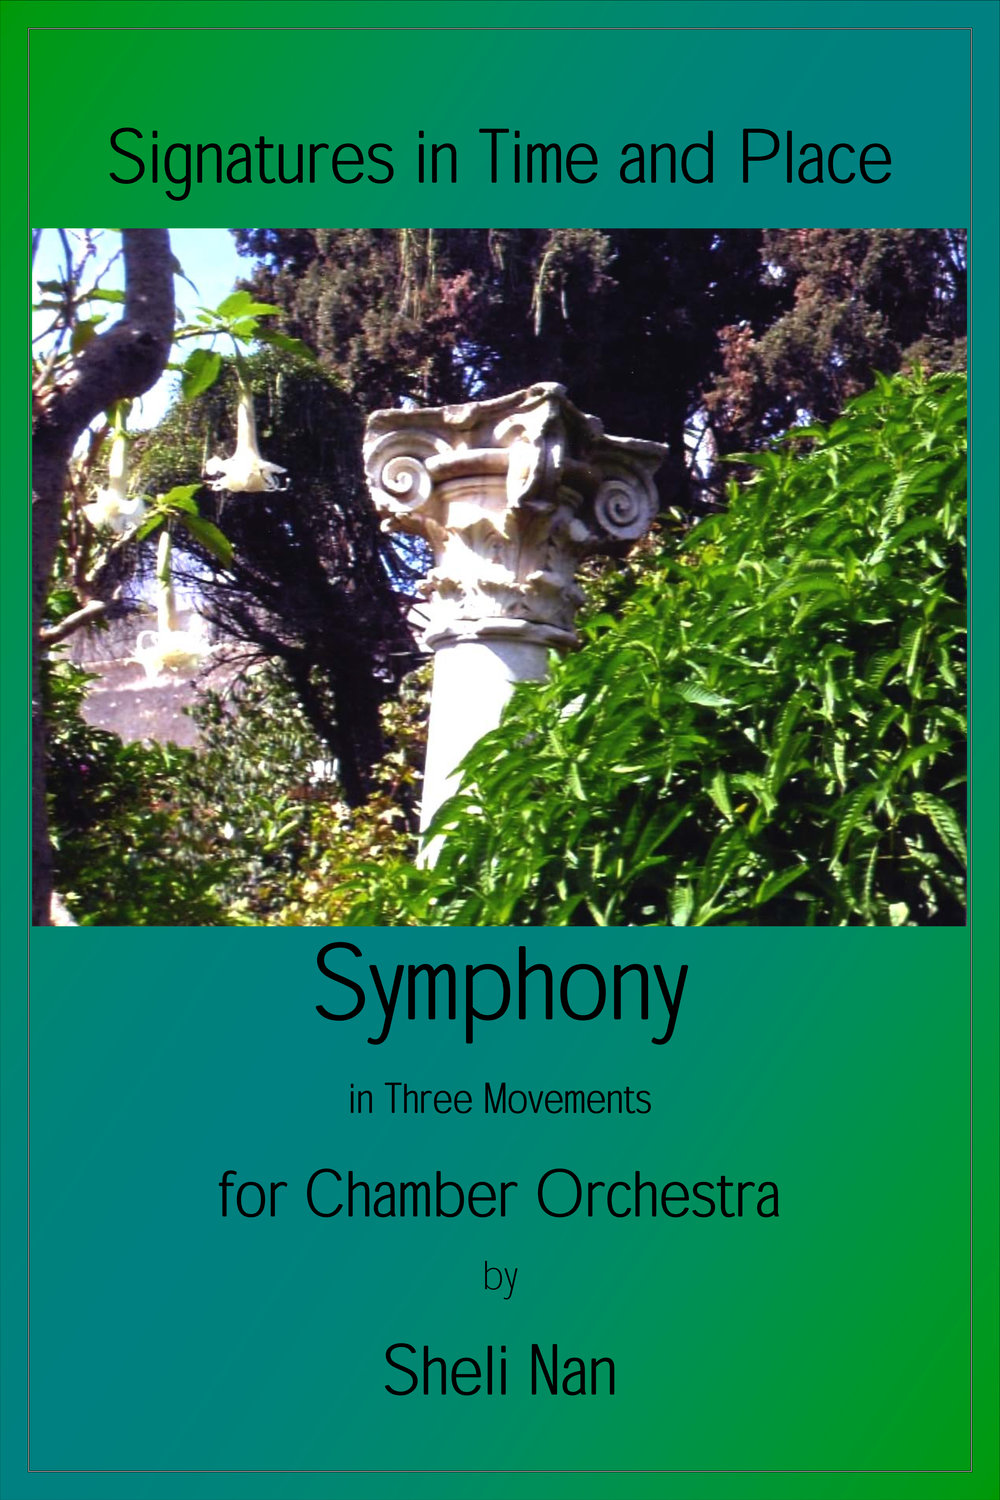 SYMPHONY - SIGNATURES IN TIME AND SPACE - cover.jpg